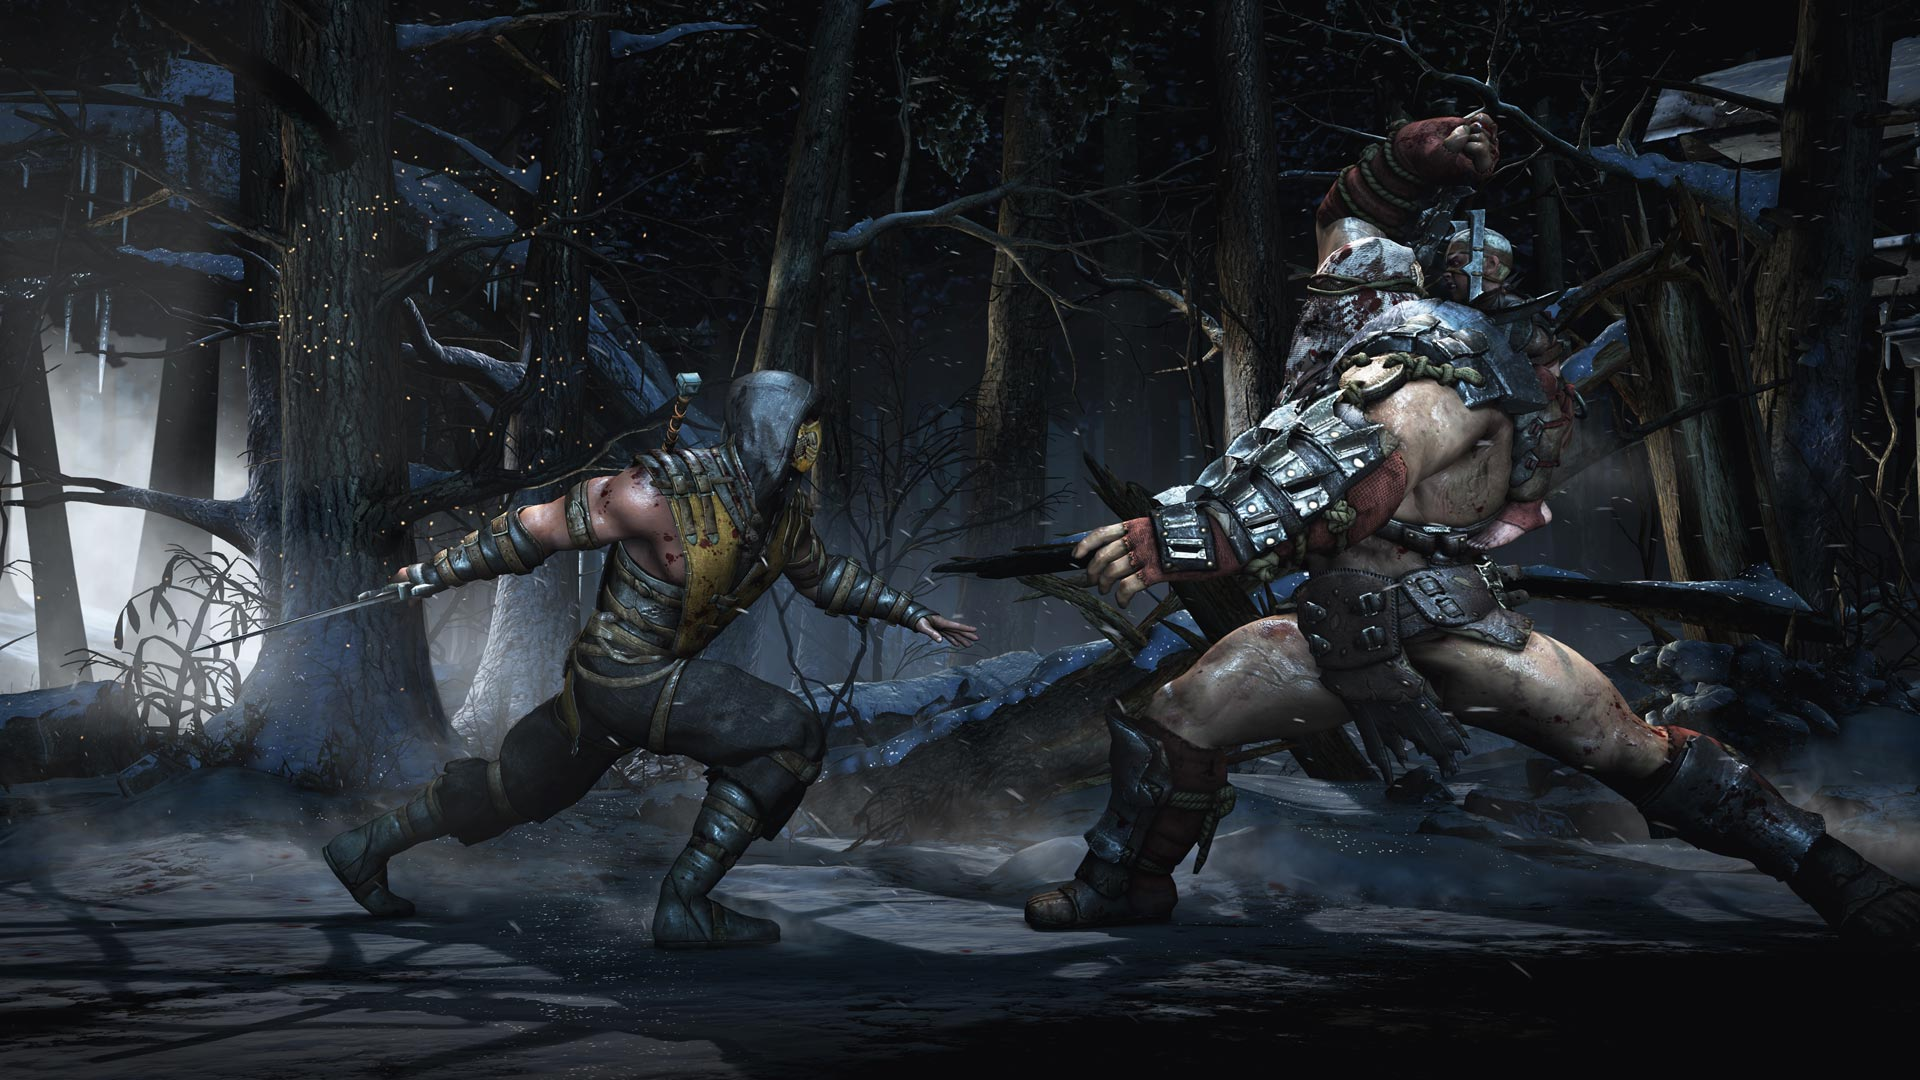 Mortal Kombat Images Mortal Kombat X Official Screenshot Hd Fond D